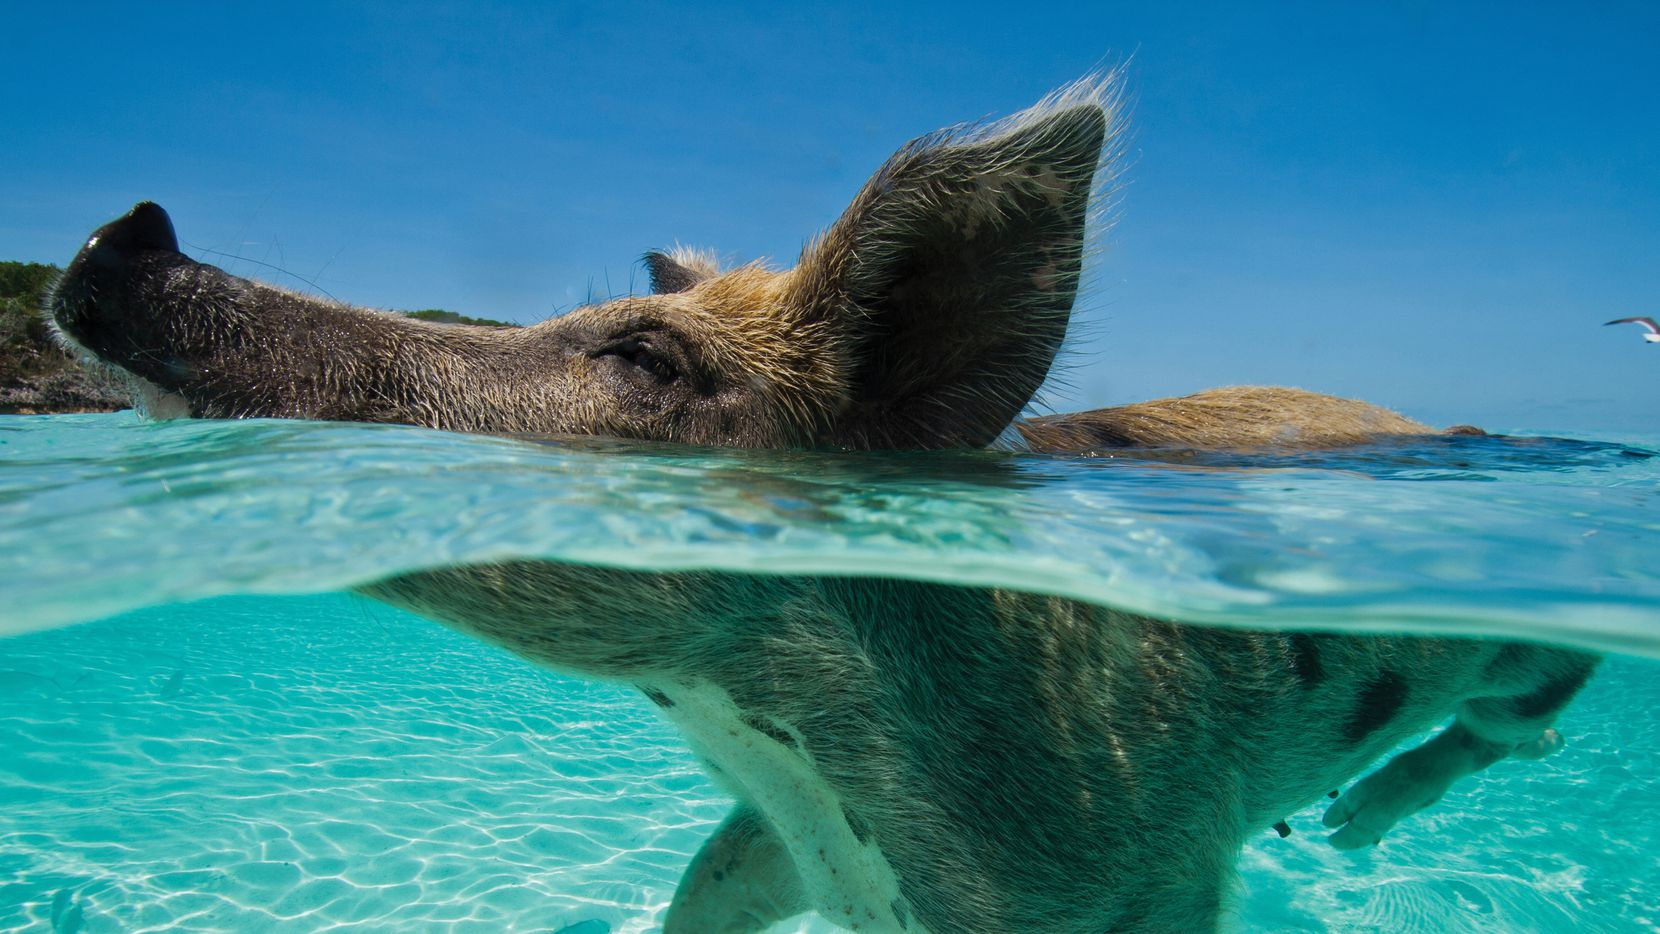 The swimming pigs of the Bahamas have become global celebrities. They even have a full-time social media professional to promote them.